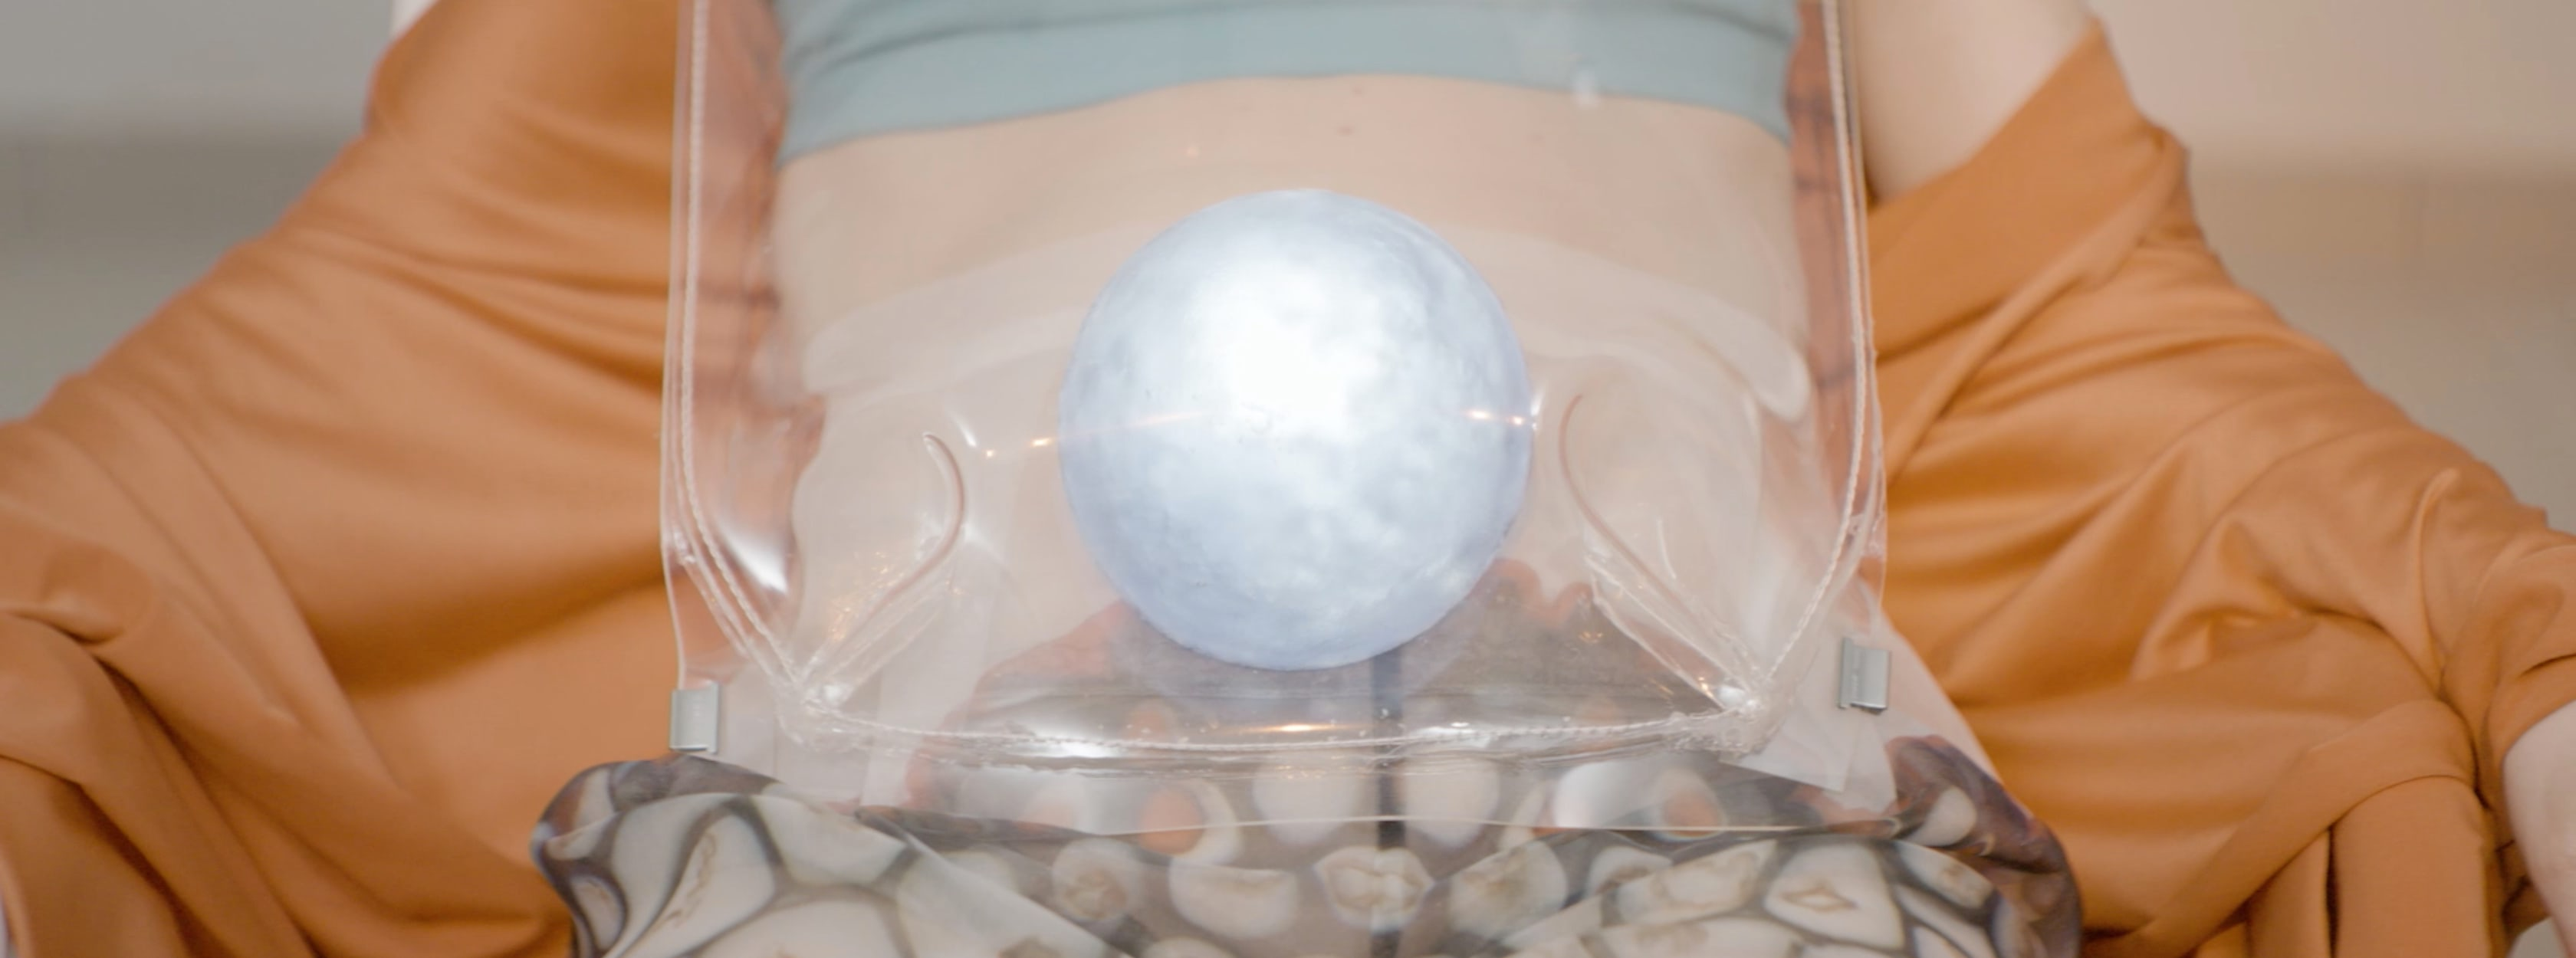 A blue shining orb is in a translucent bag placed on a woman's stomach.